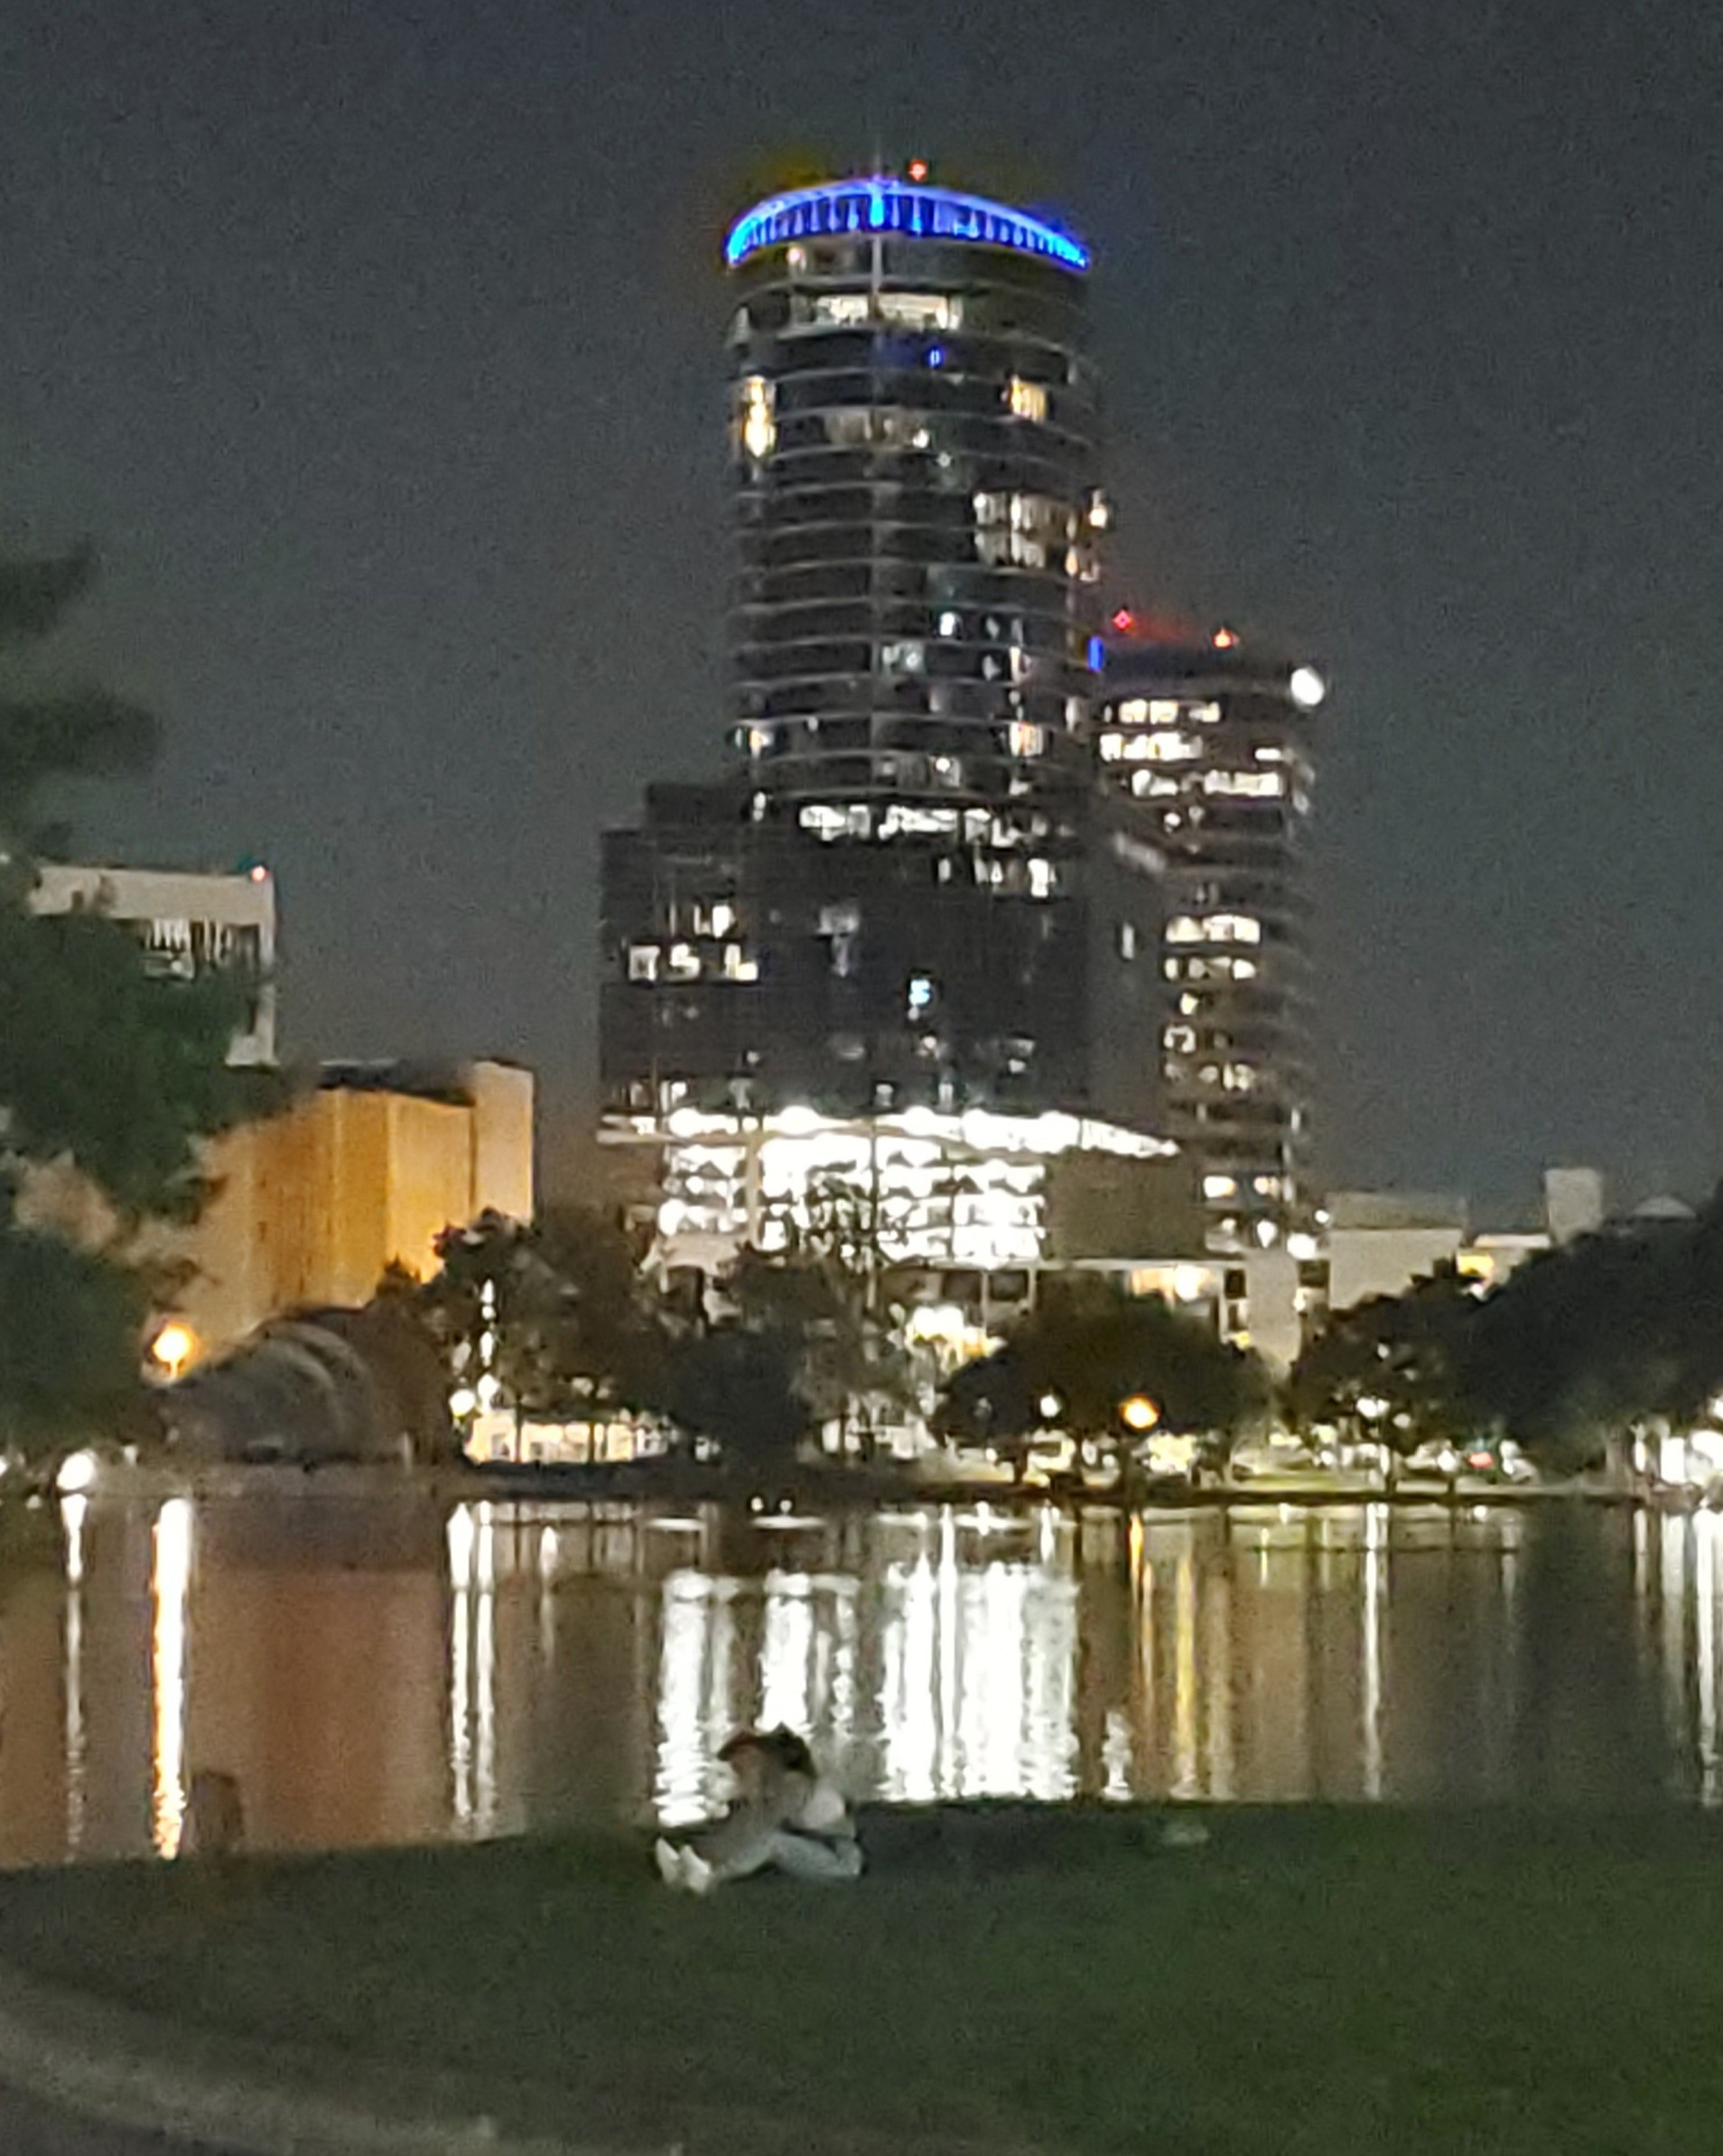 Downtown-Orlando-Paint-The-Town-Blue-2021-FBITCAAA